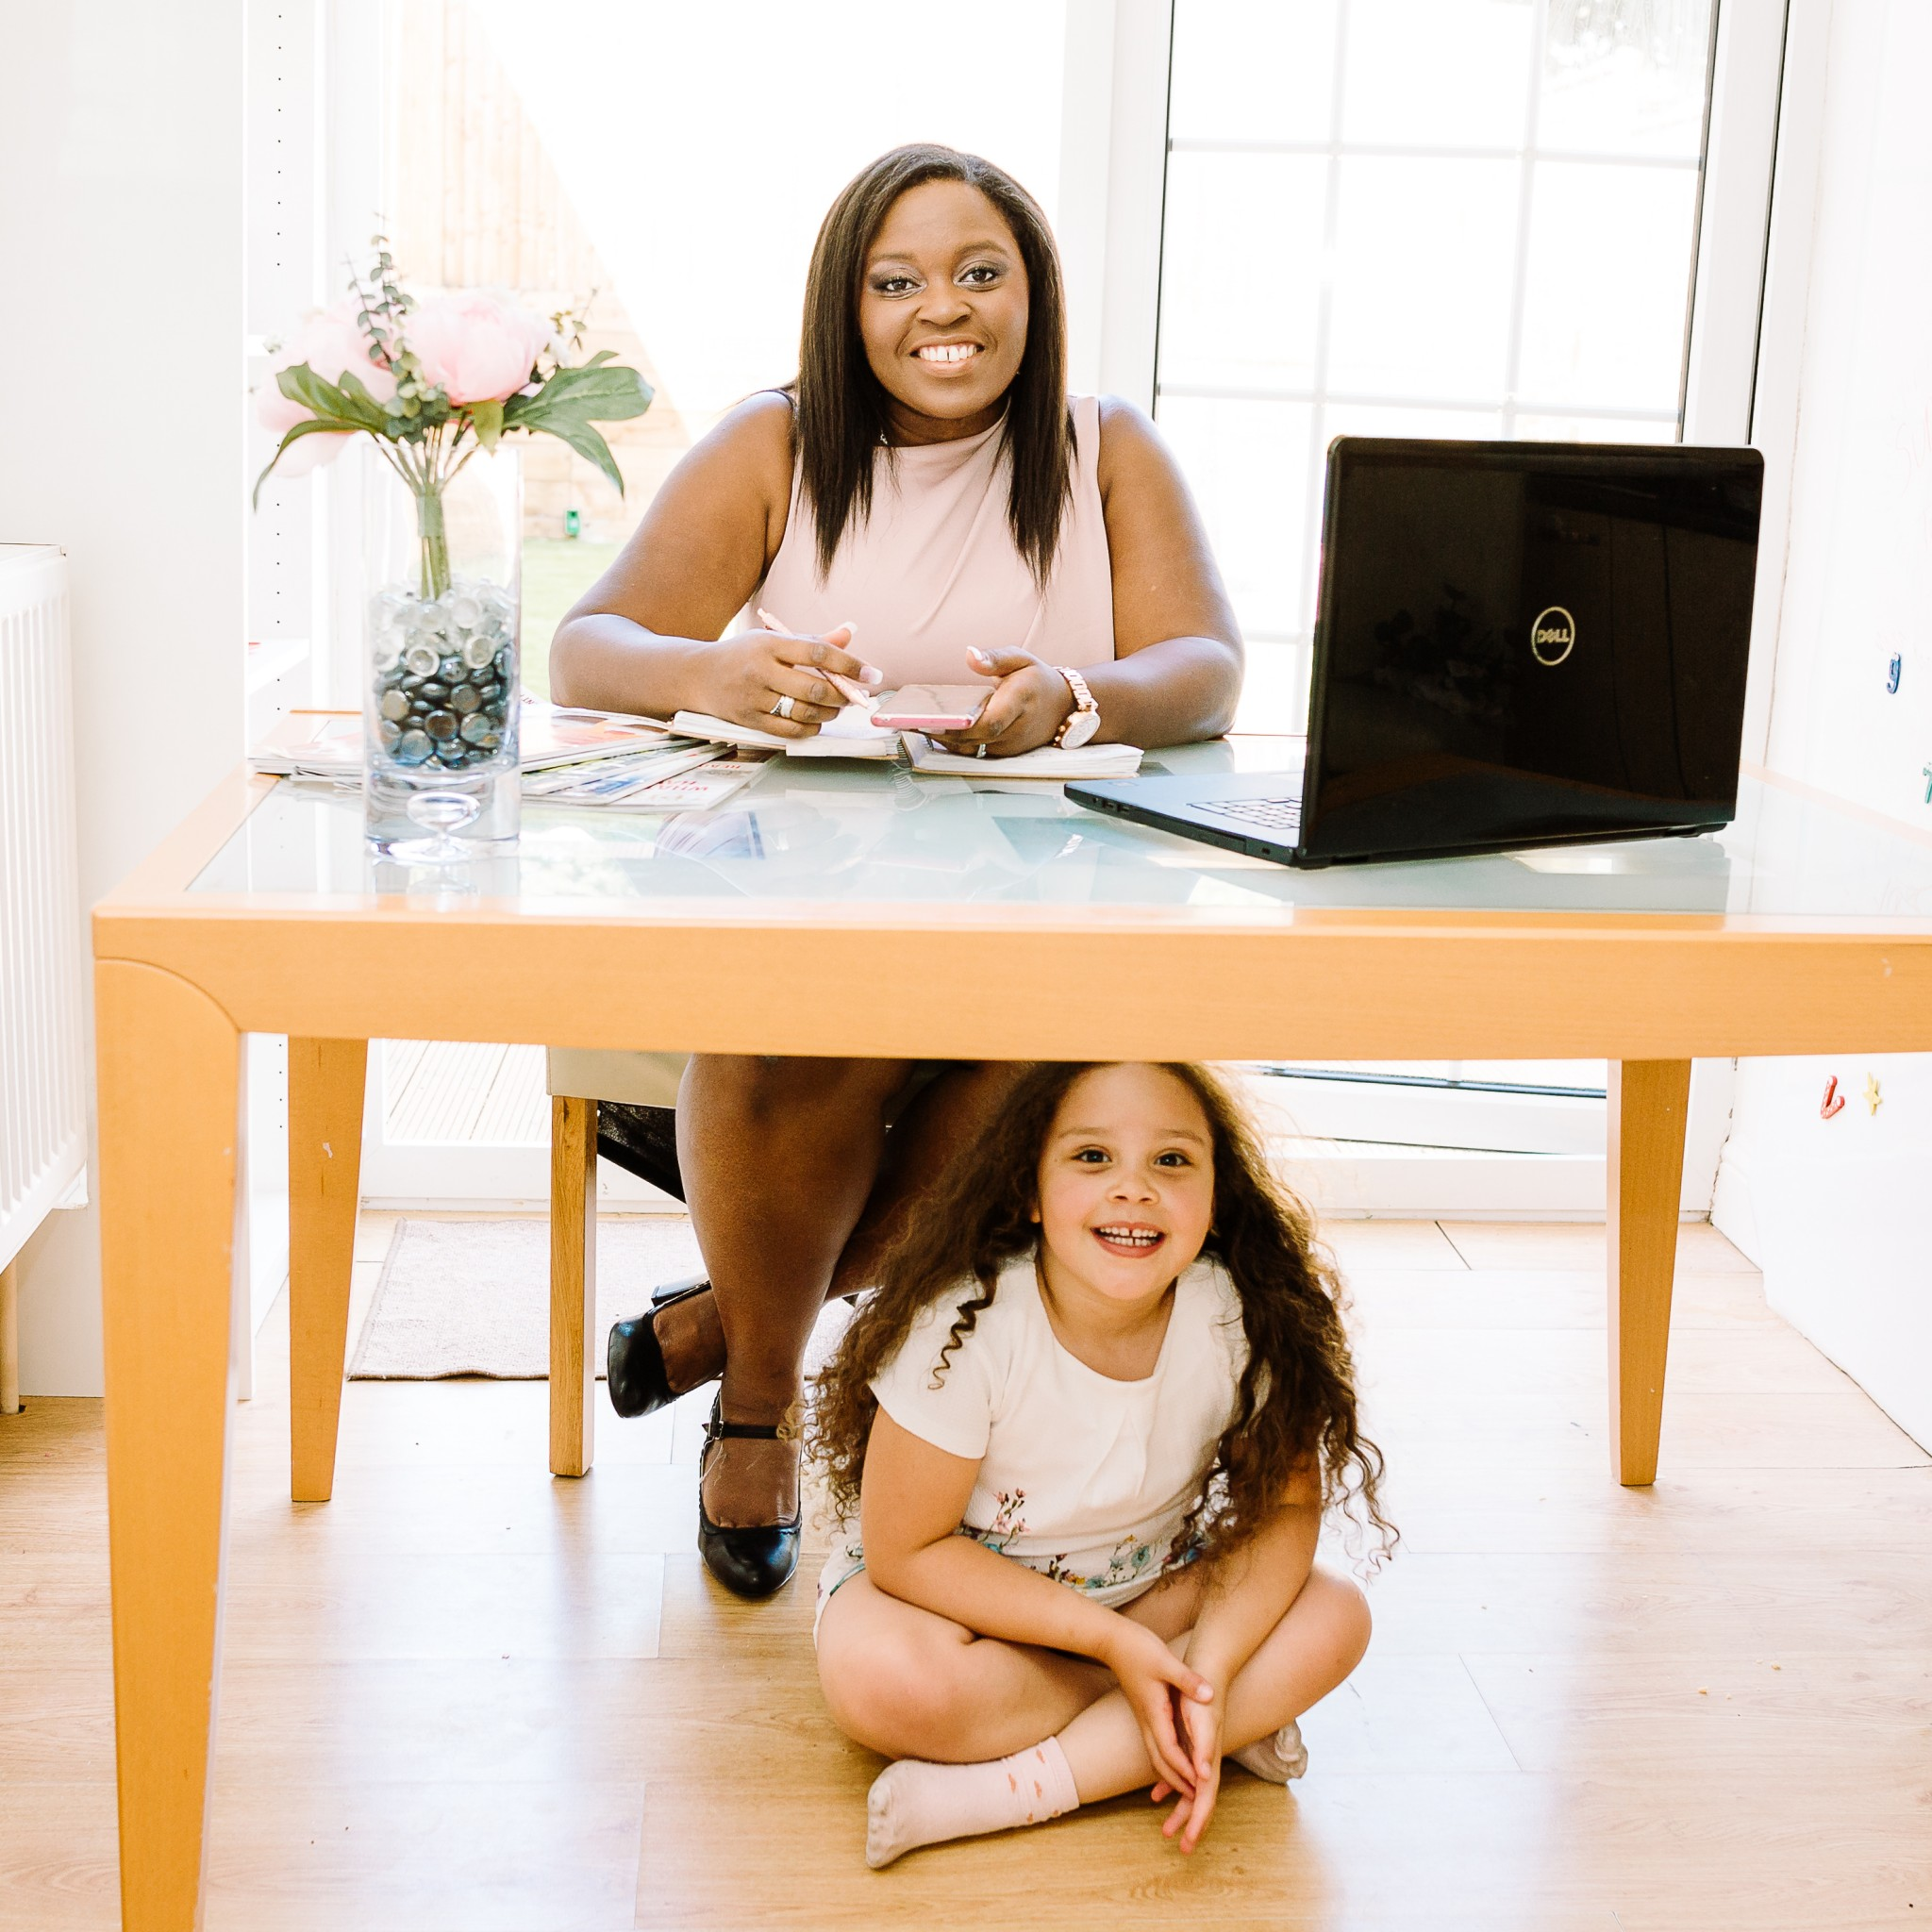 An image from a personal branding shoot with property sourcer Jasmine Doidge, who is sitting at her desk behind her laptop, with her daughter sitting under the desk